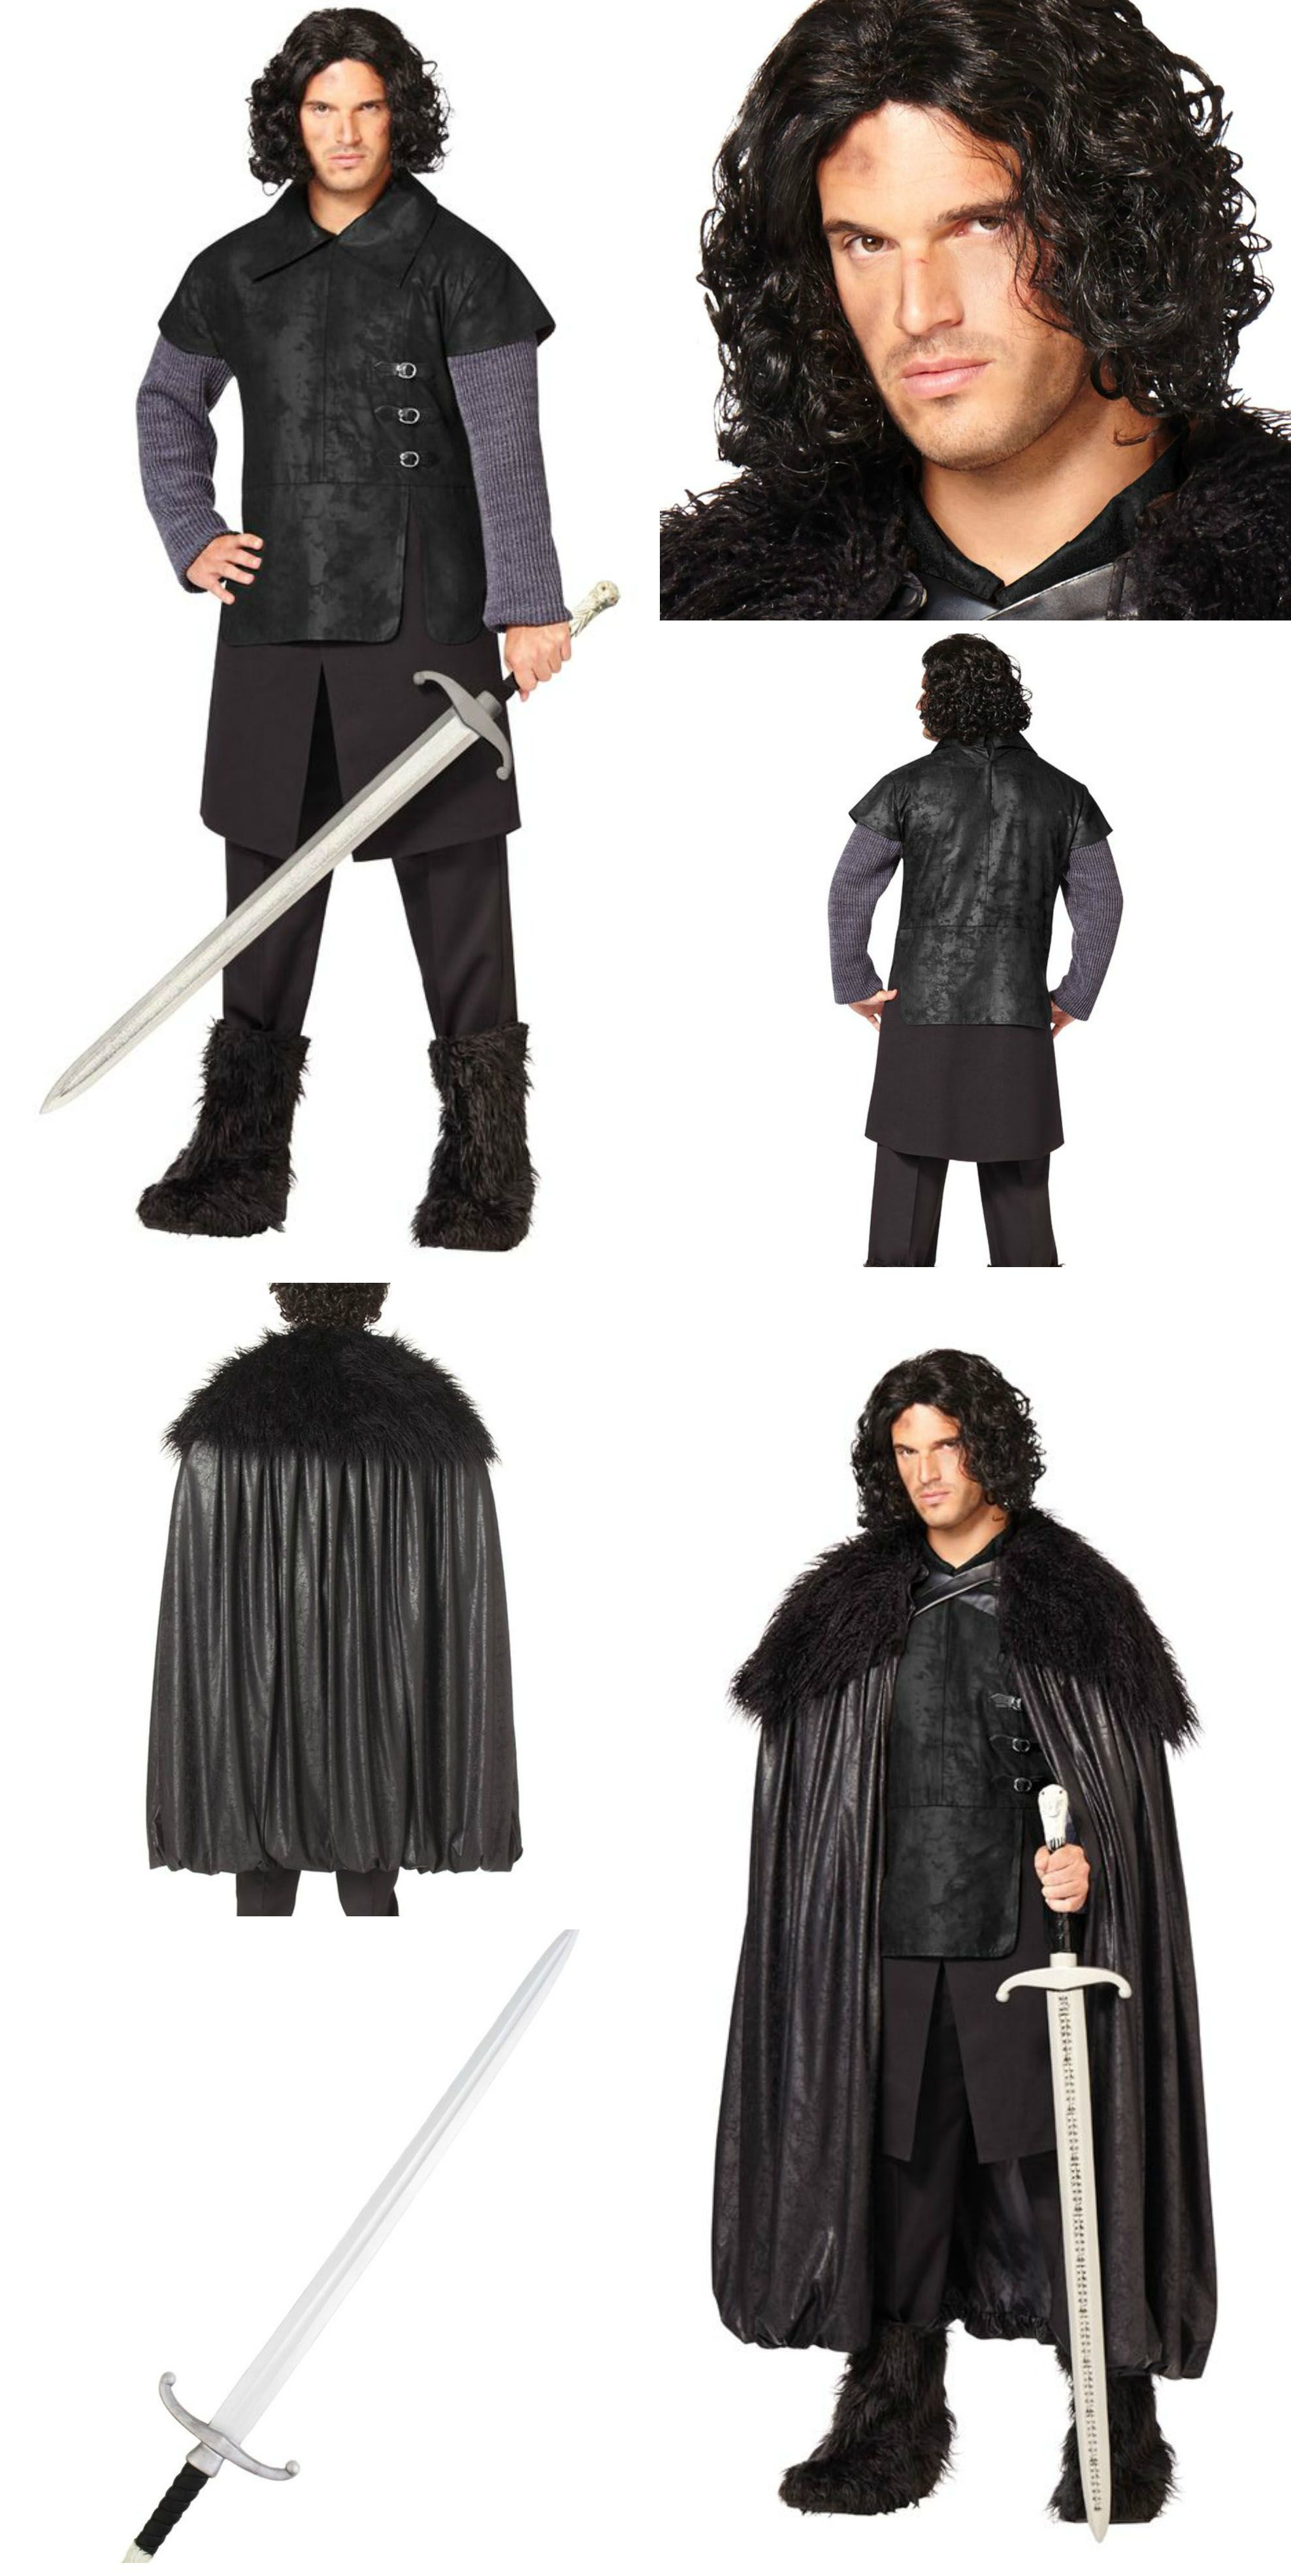 game of thrones jon snow adult mens costume deluxe cloak wig and longclaw sword spirit halloweenhalloween 2016halloween stuffhalloween partyhalloween - Spirit Halloween Store 2016